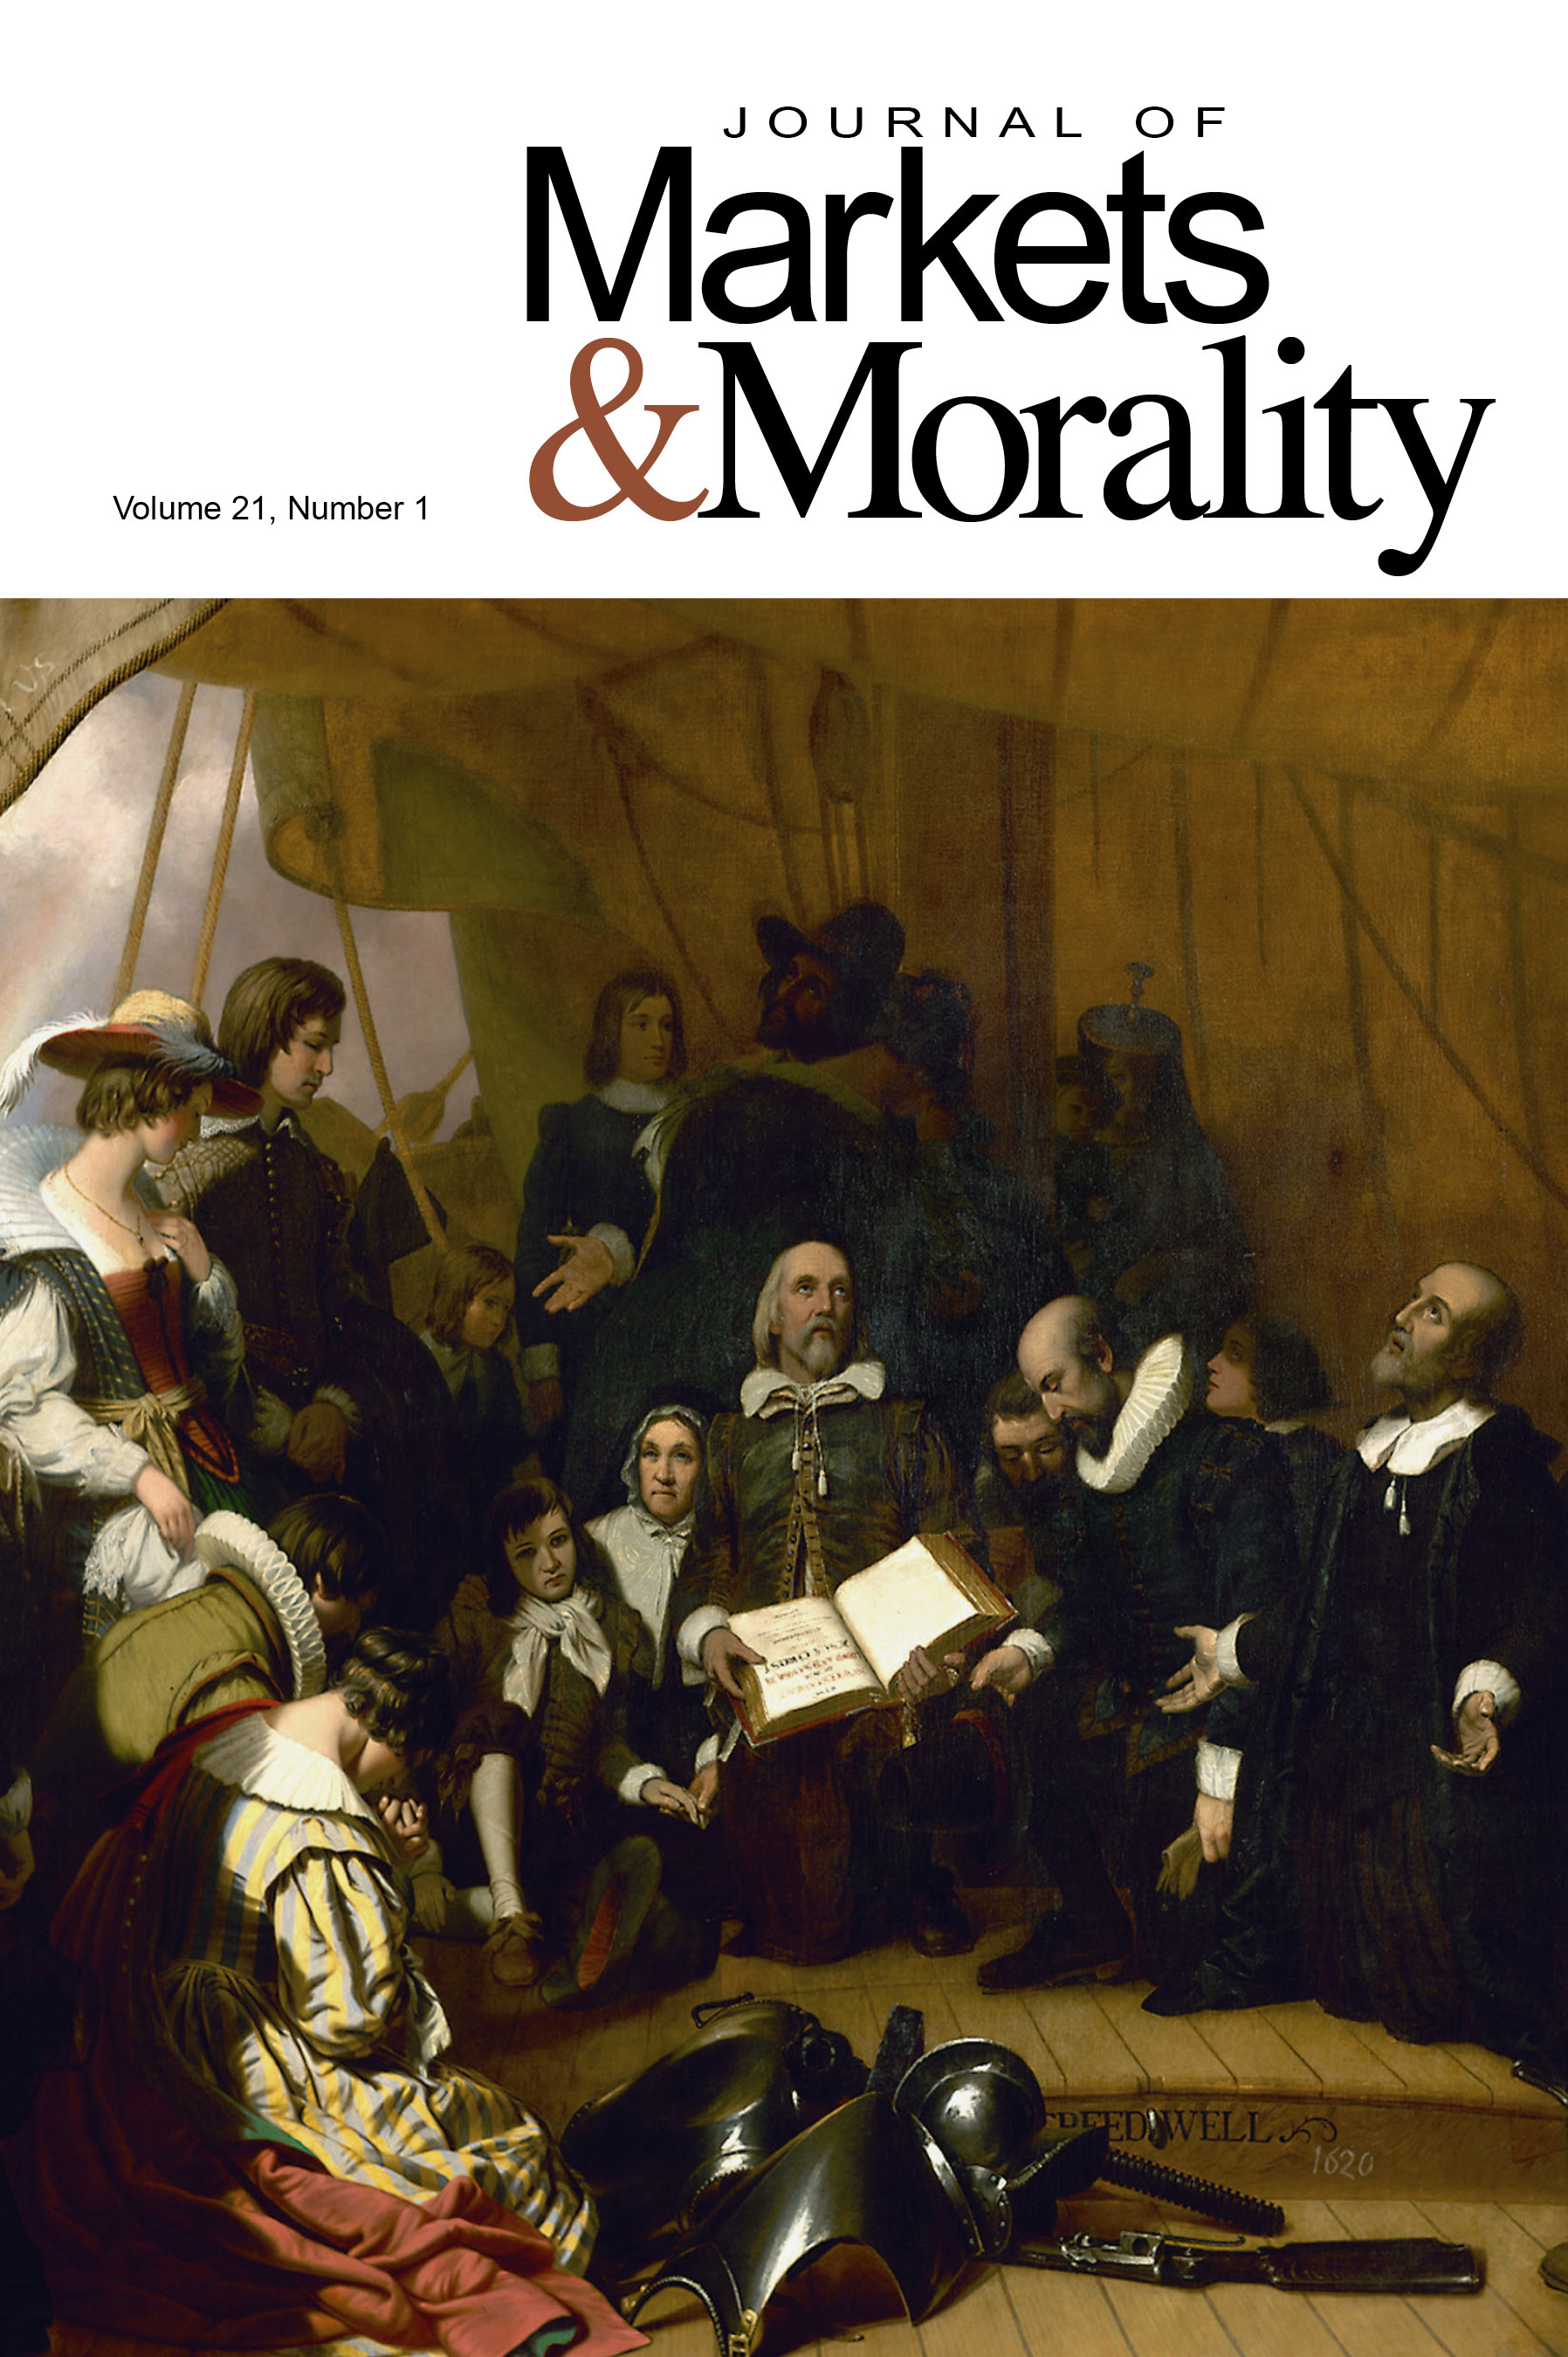 Journal Cover - Title in black lettering above a painting of a group of people in circa 18th century clothing gathered in a circle and praying.